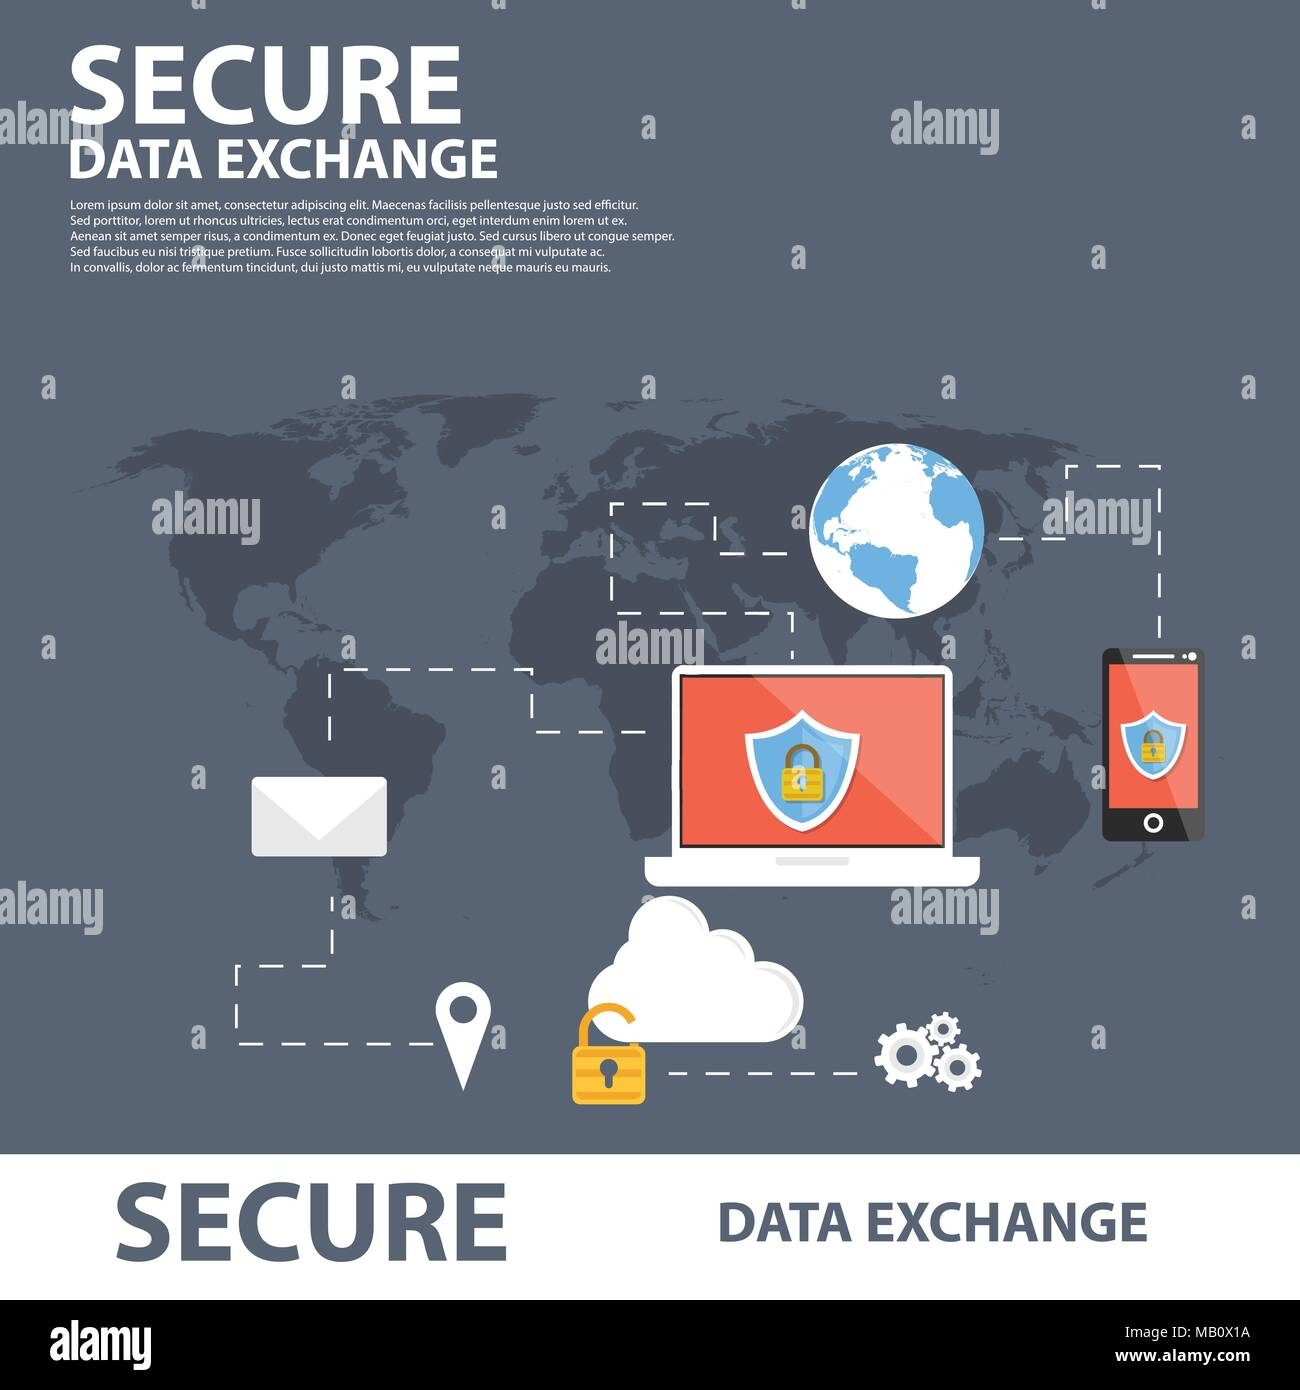 Secure Data Exchange Flat Icon Banner Concept - Stock Image